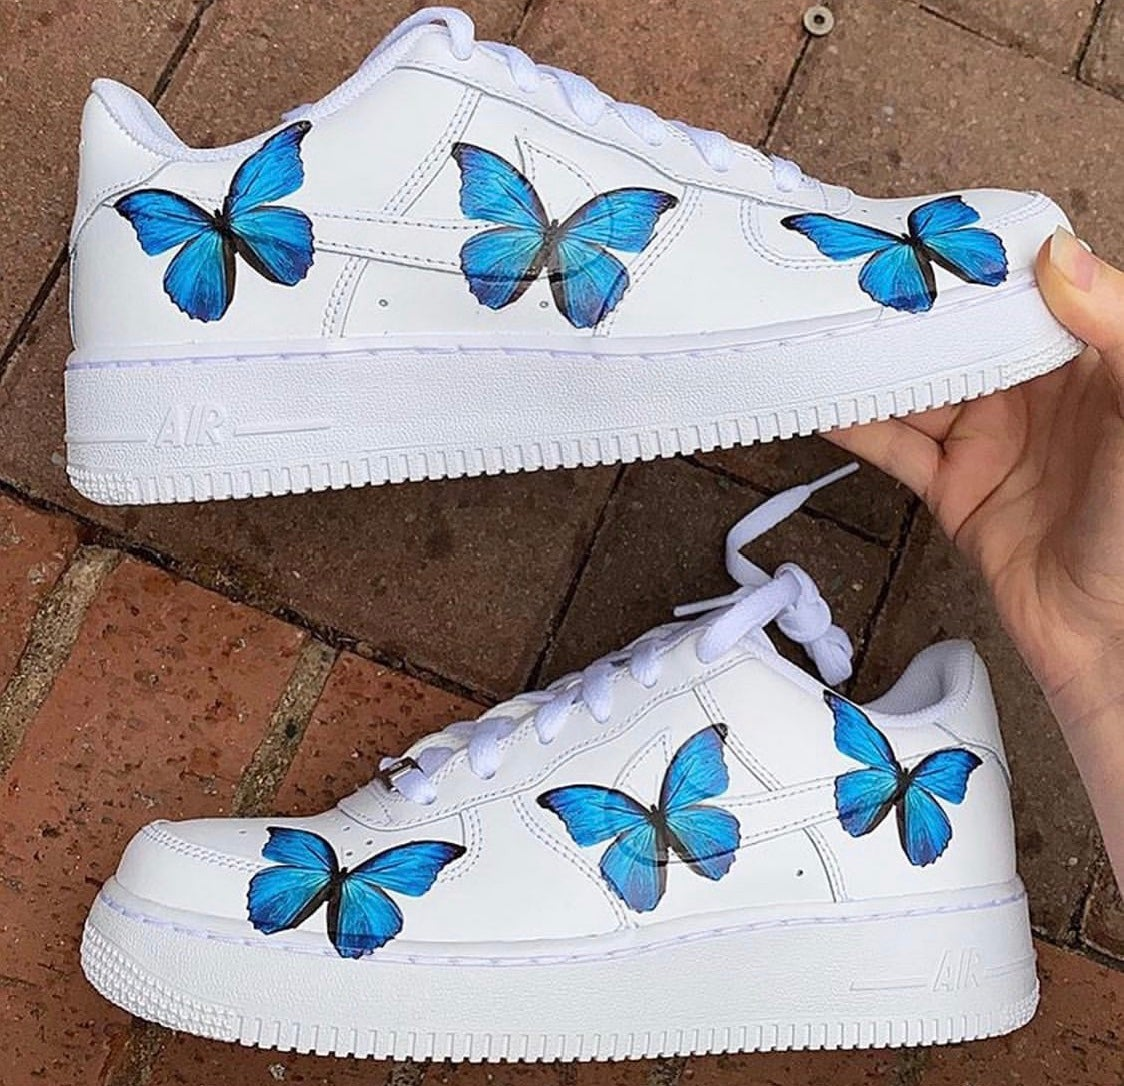 nikes with butterflies